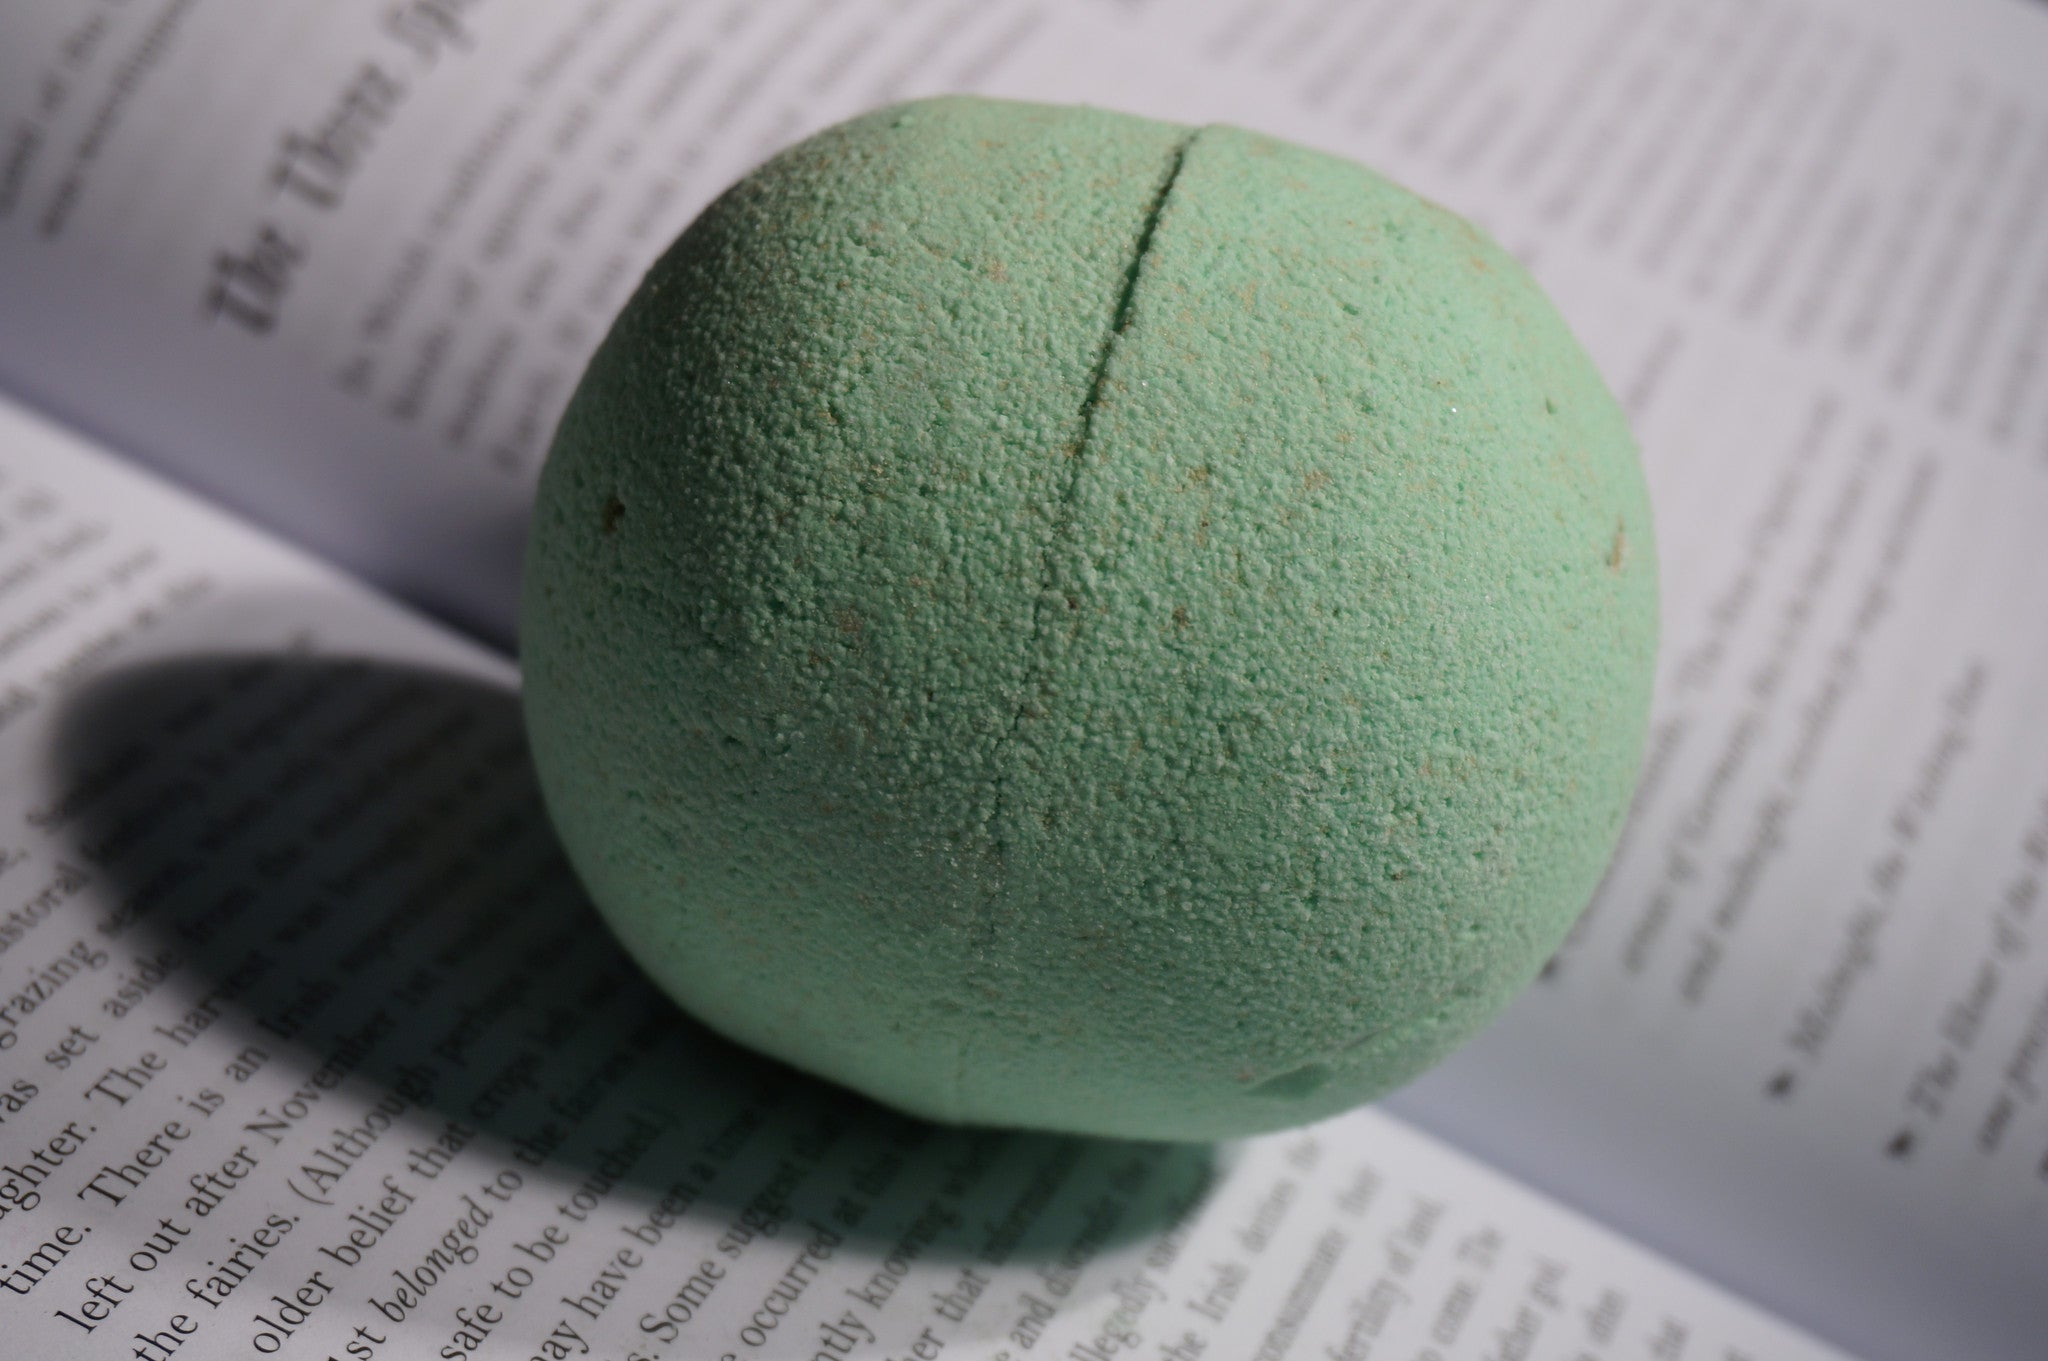 Mischief Night Bath Bomb